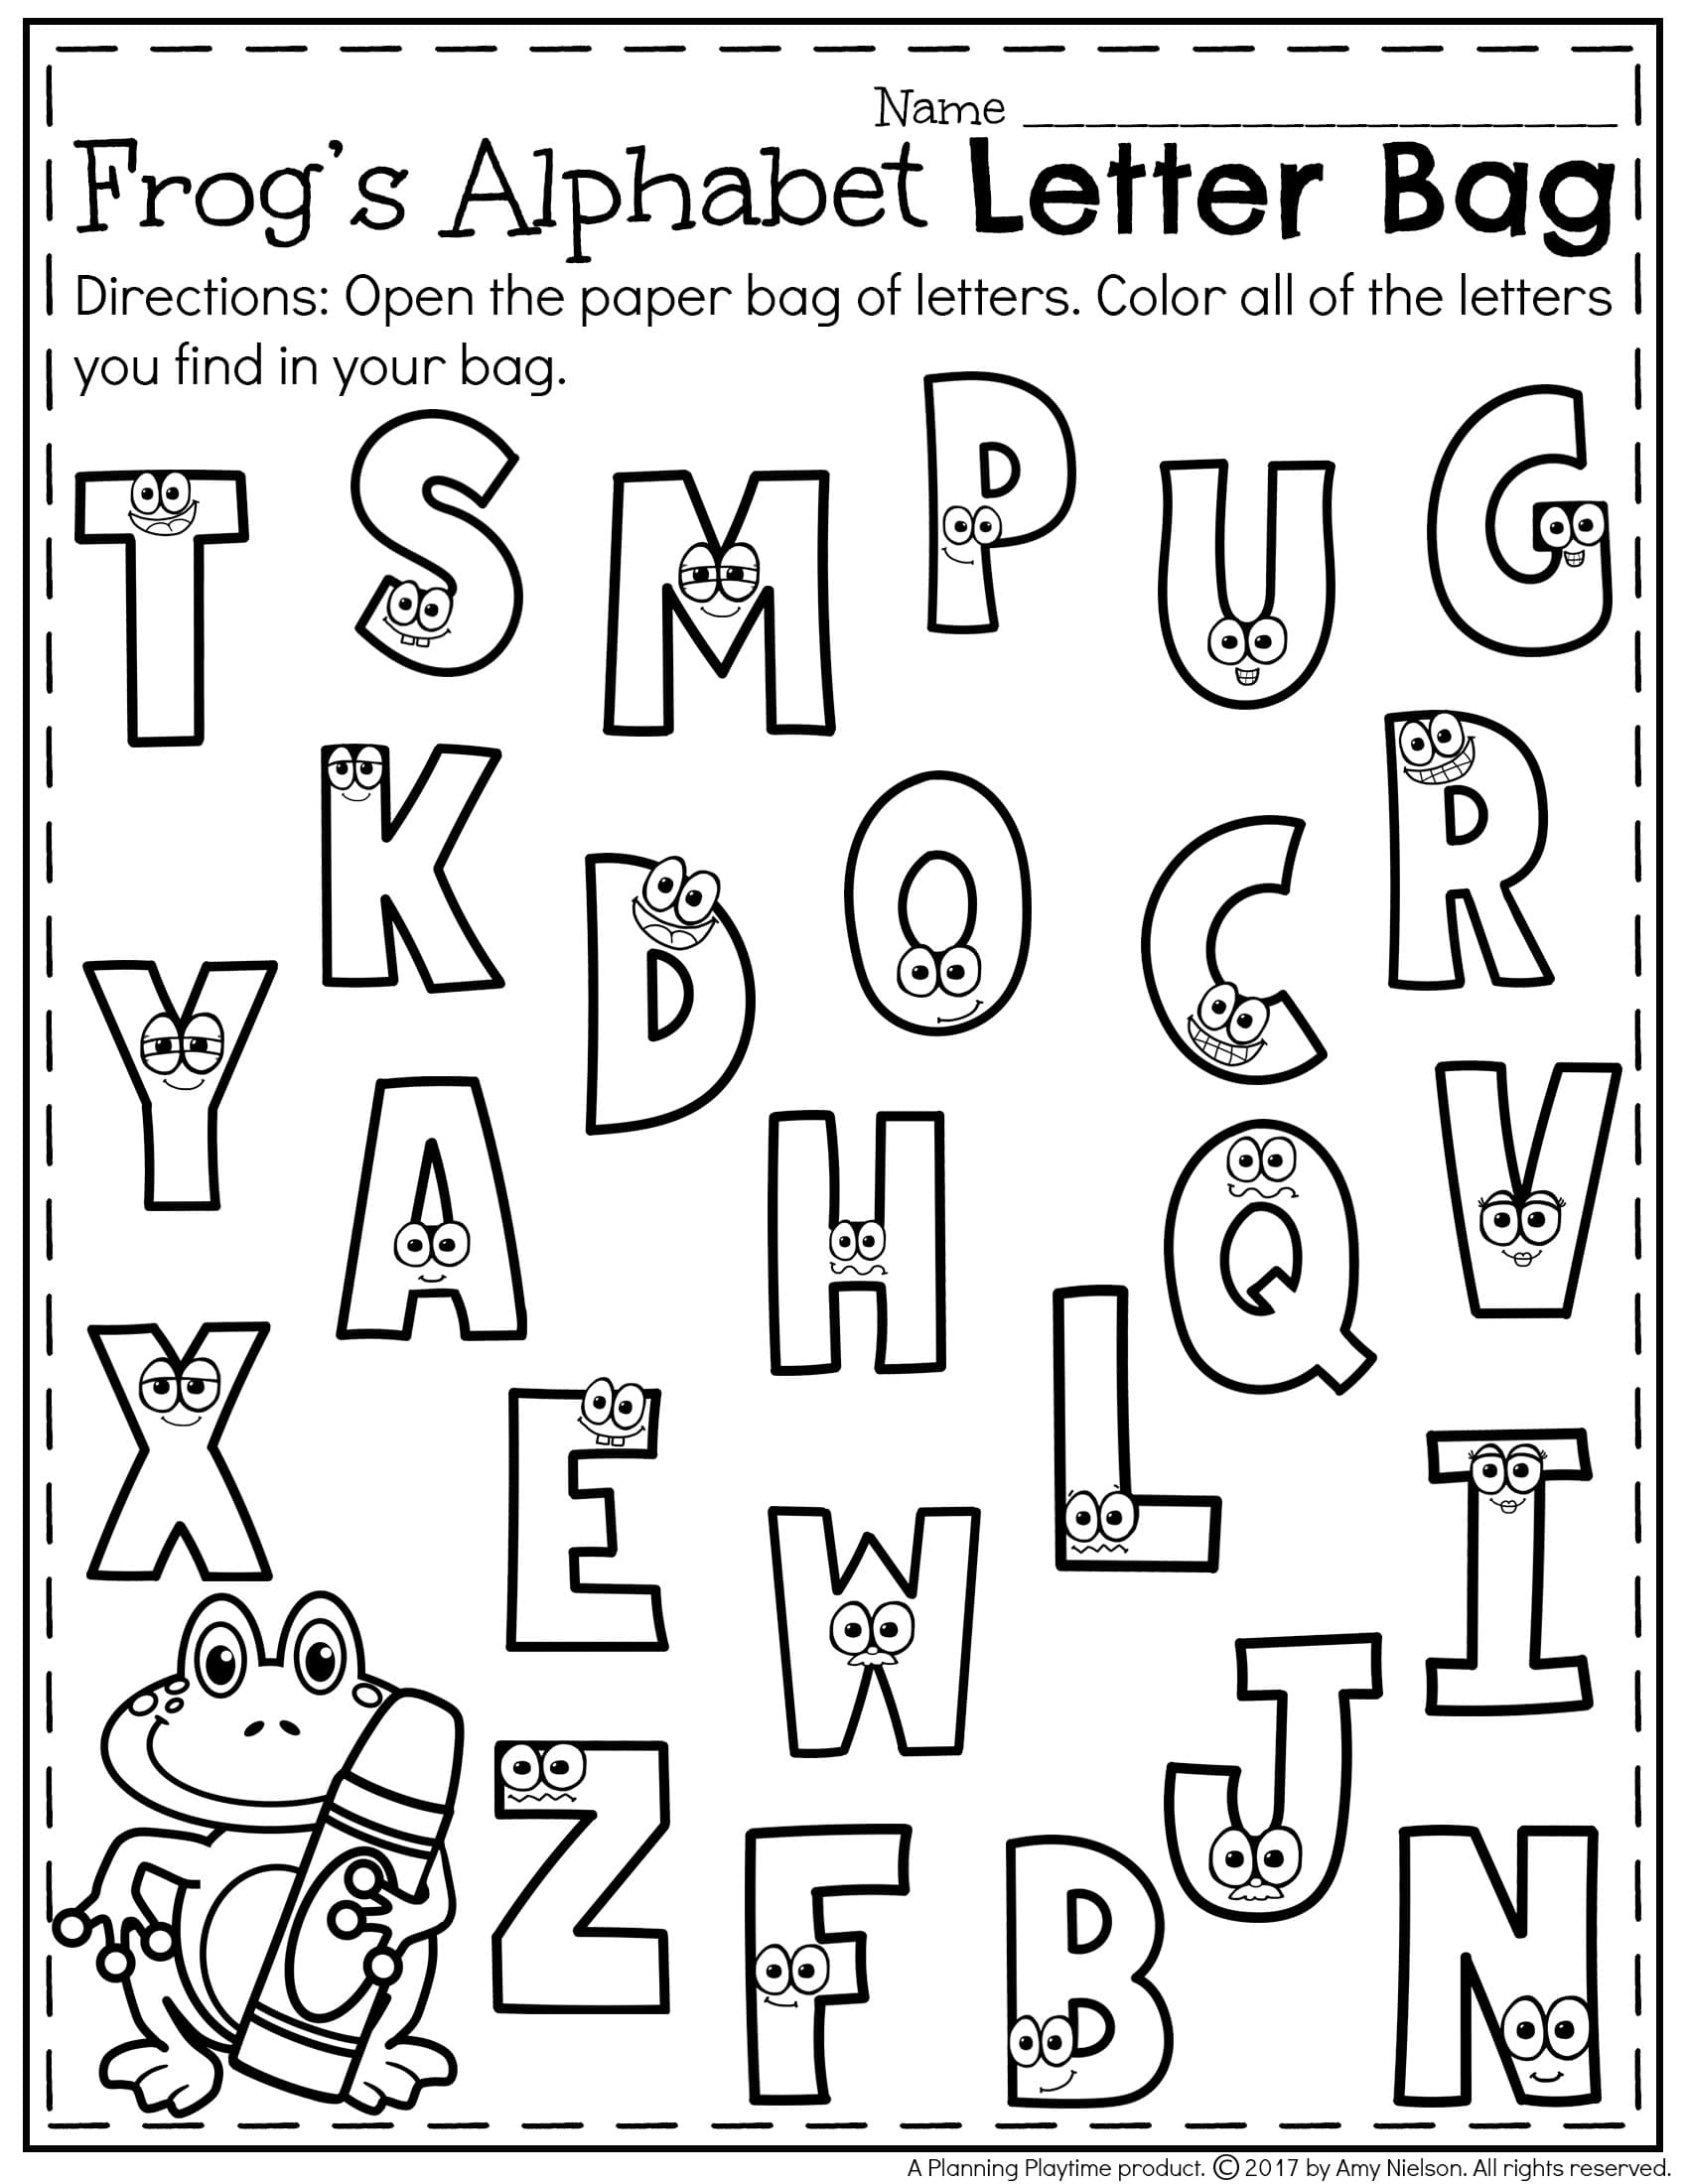 Preschooler Writing Worksheets Free First Grade Printable in Letter S Worksheets For First Grade